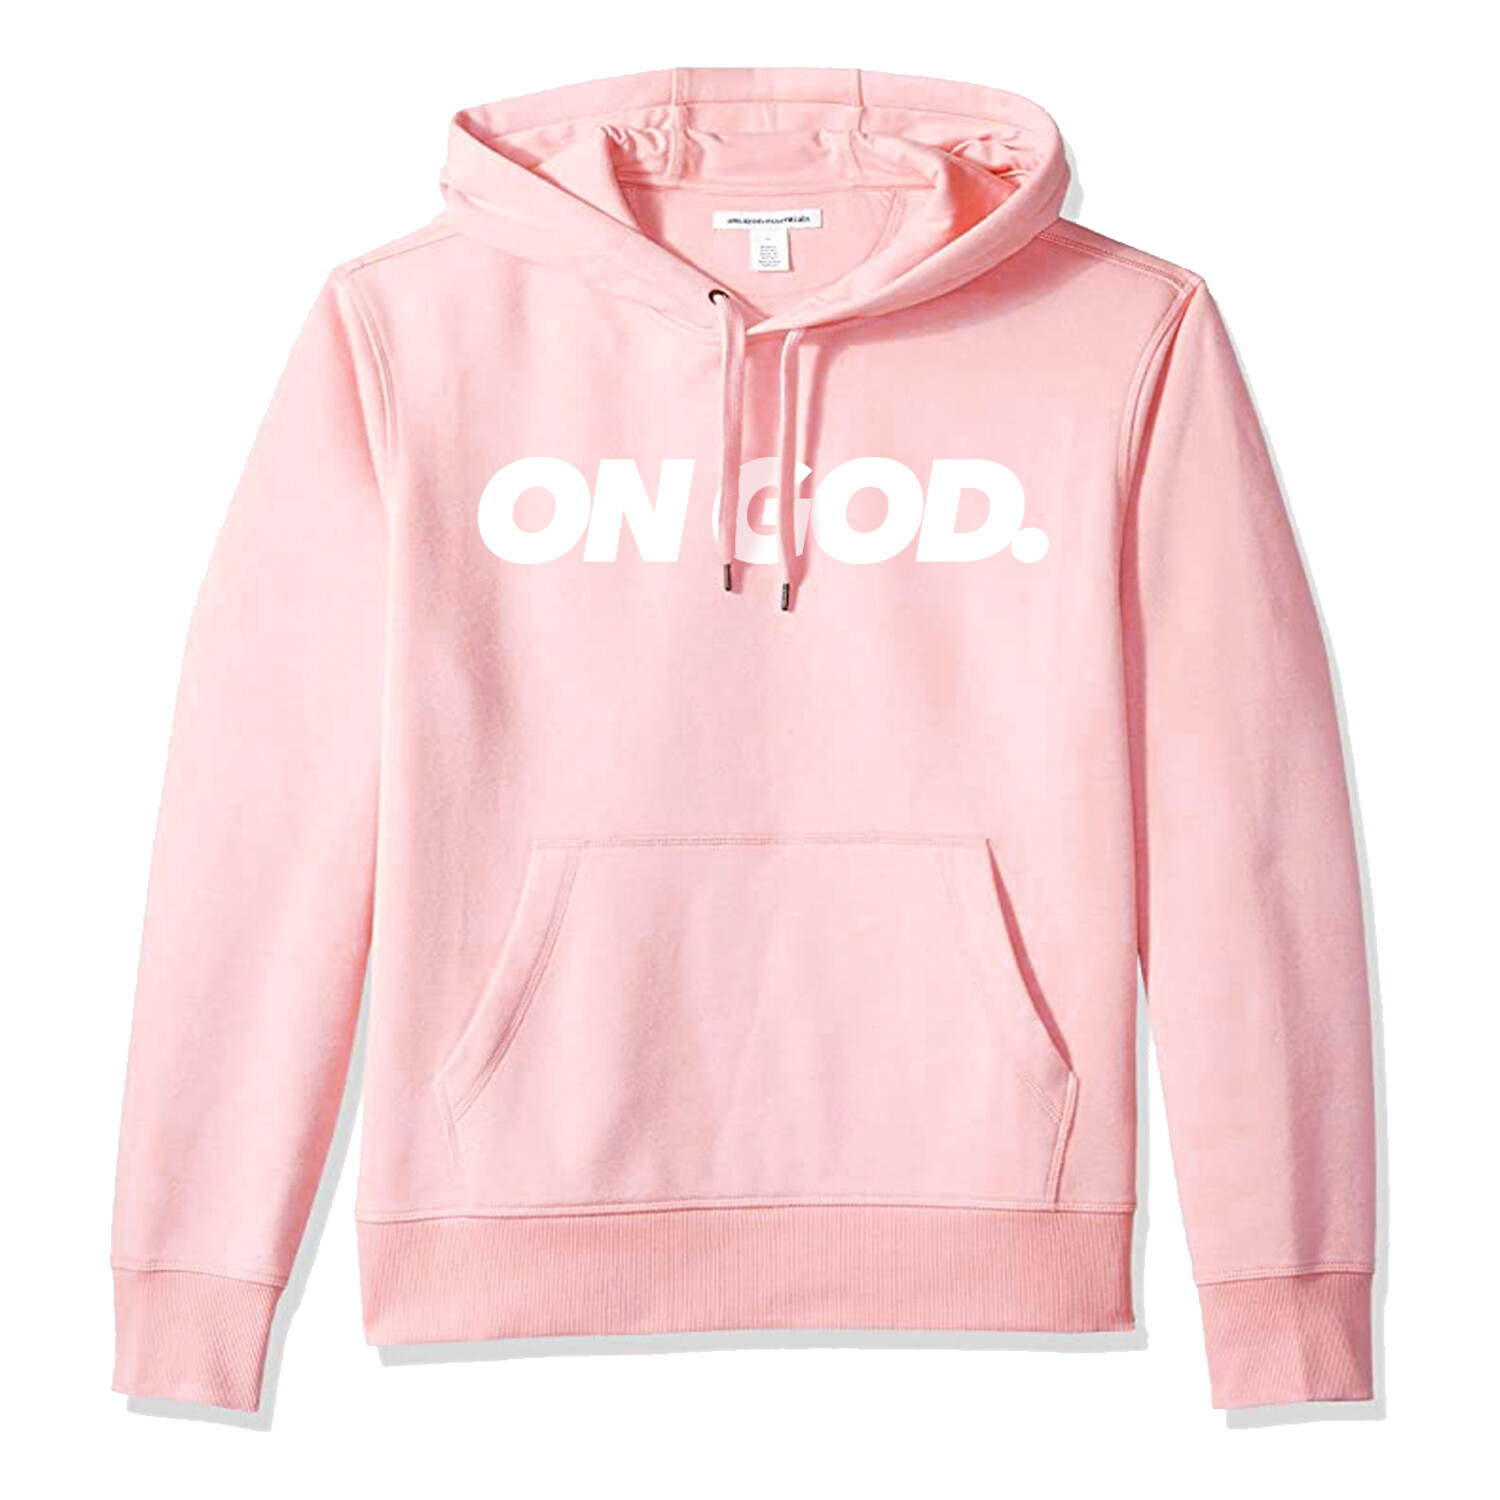 On God. BOX Pullover PINK